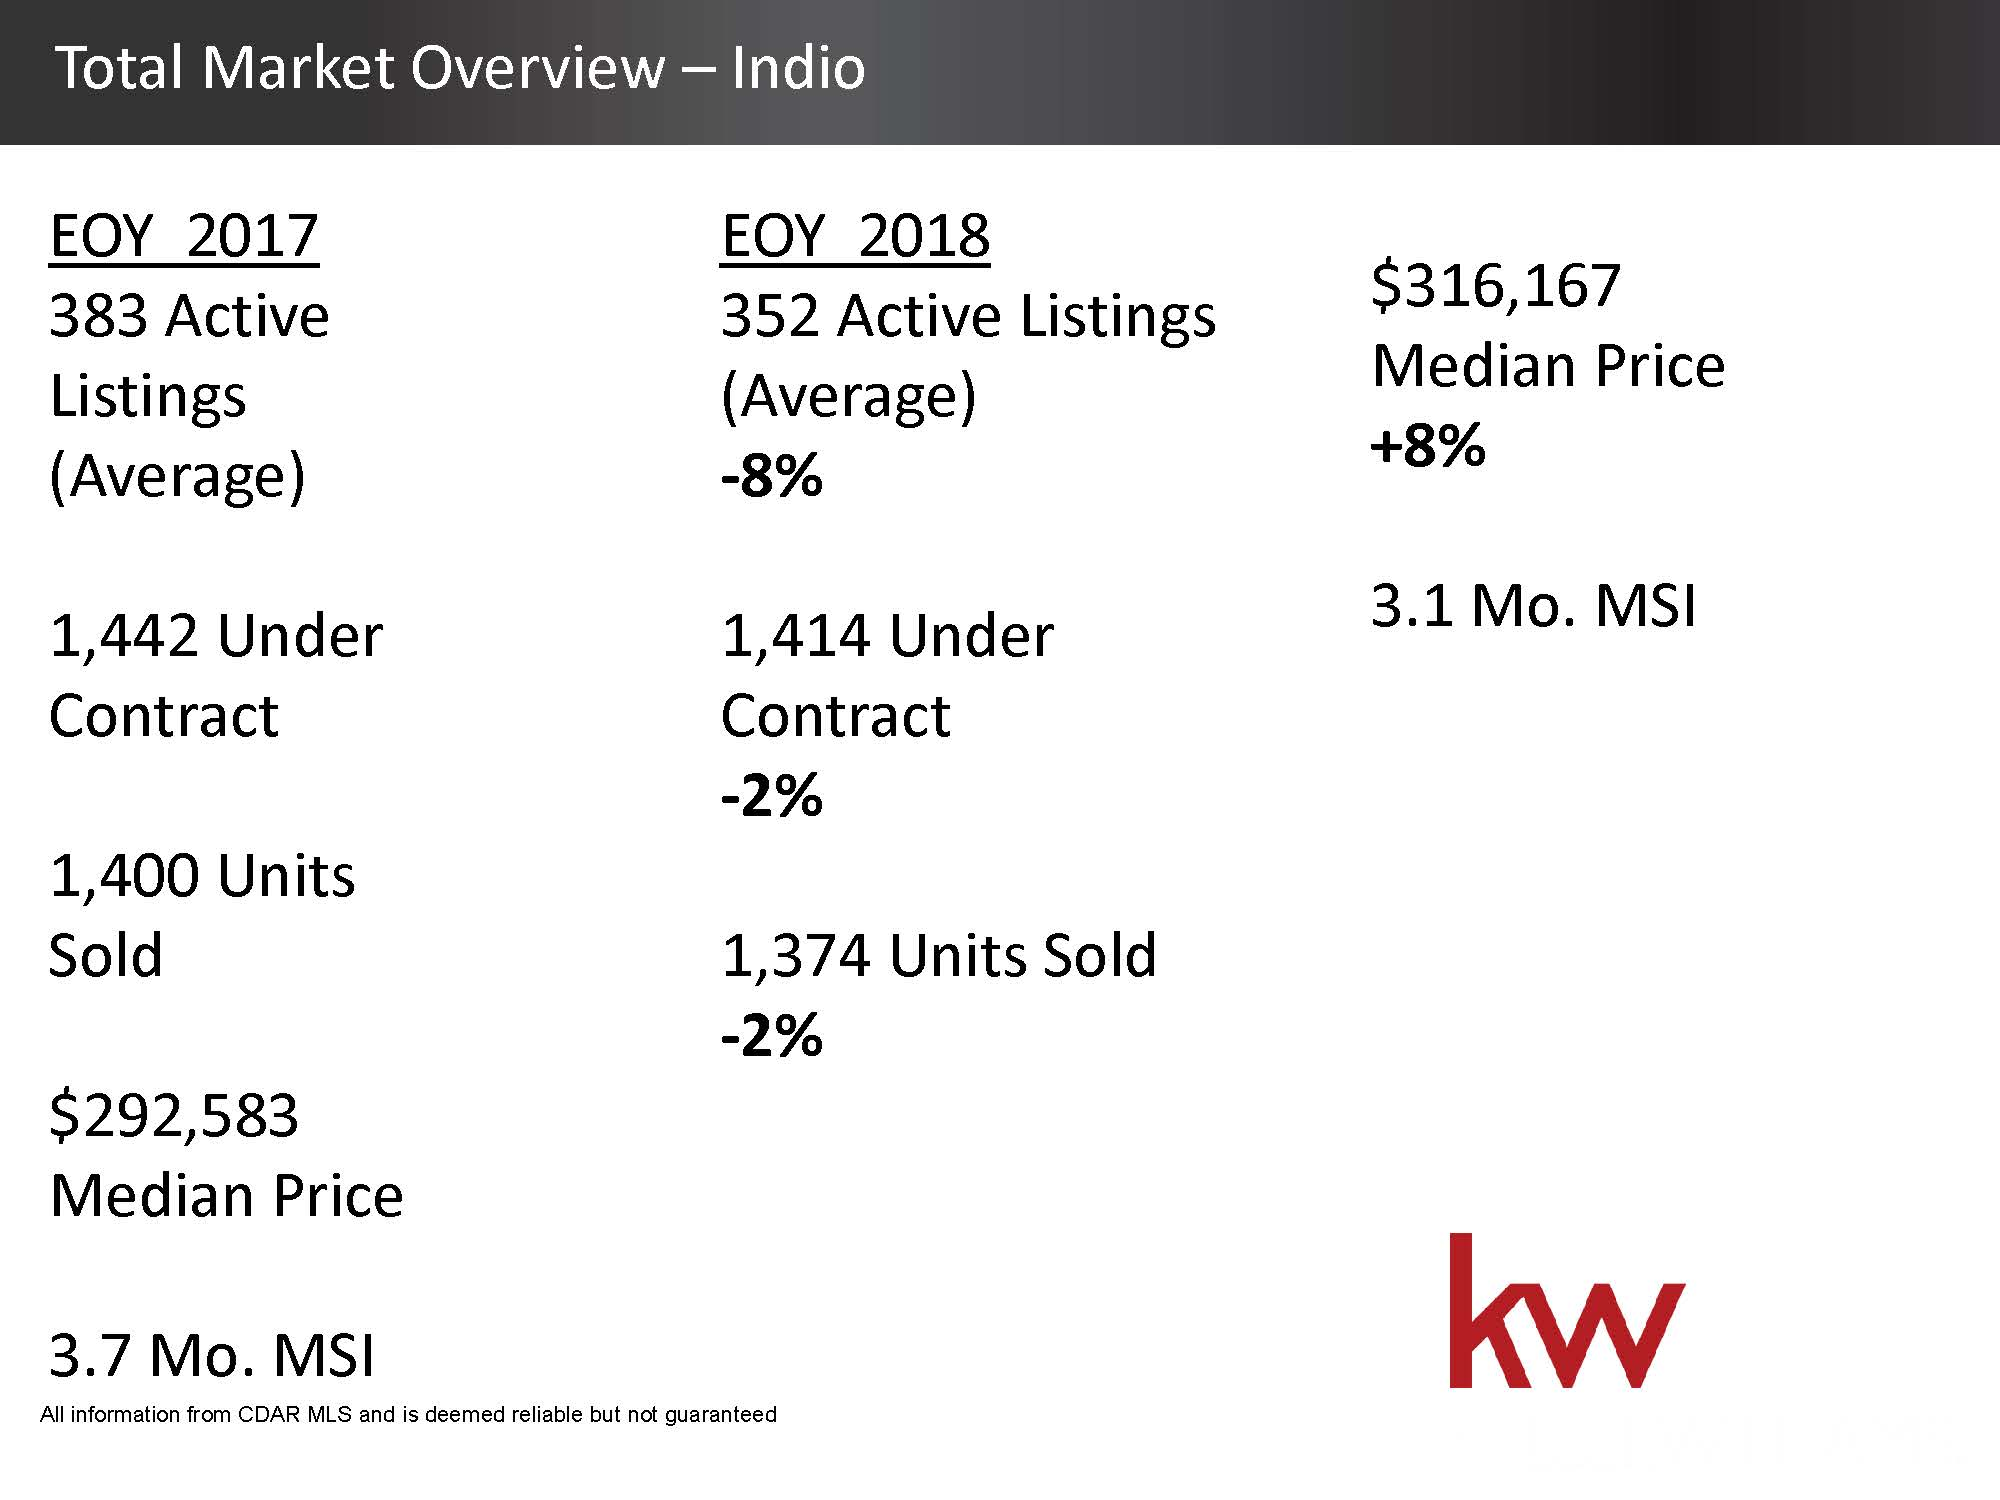 Total Housing Market 2018 Overview - Indio